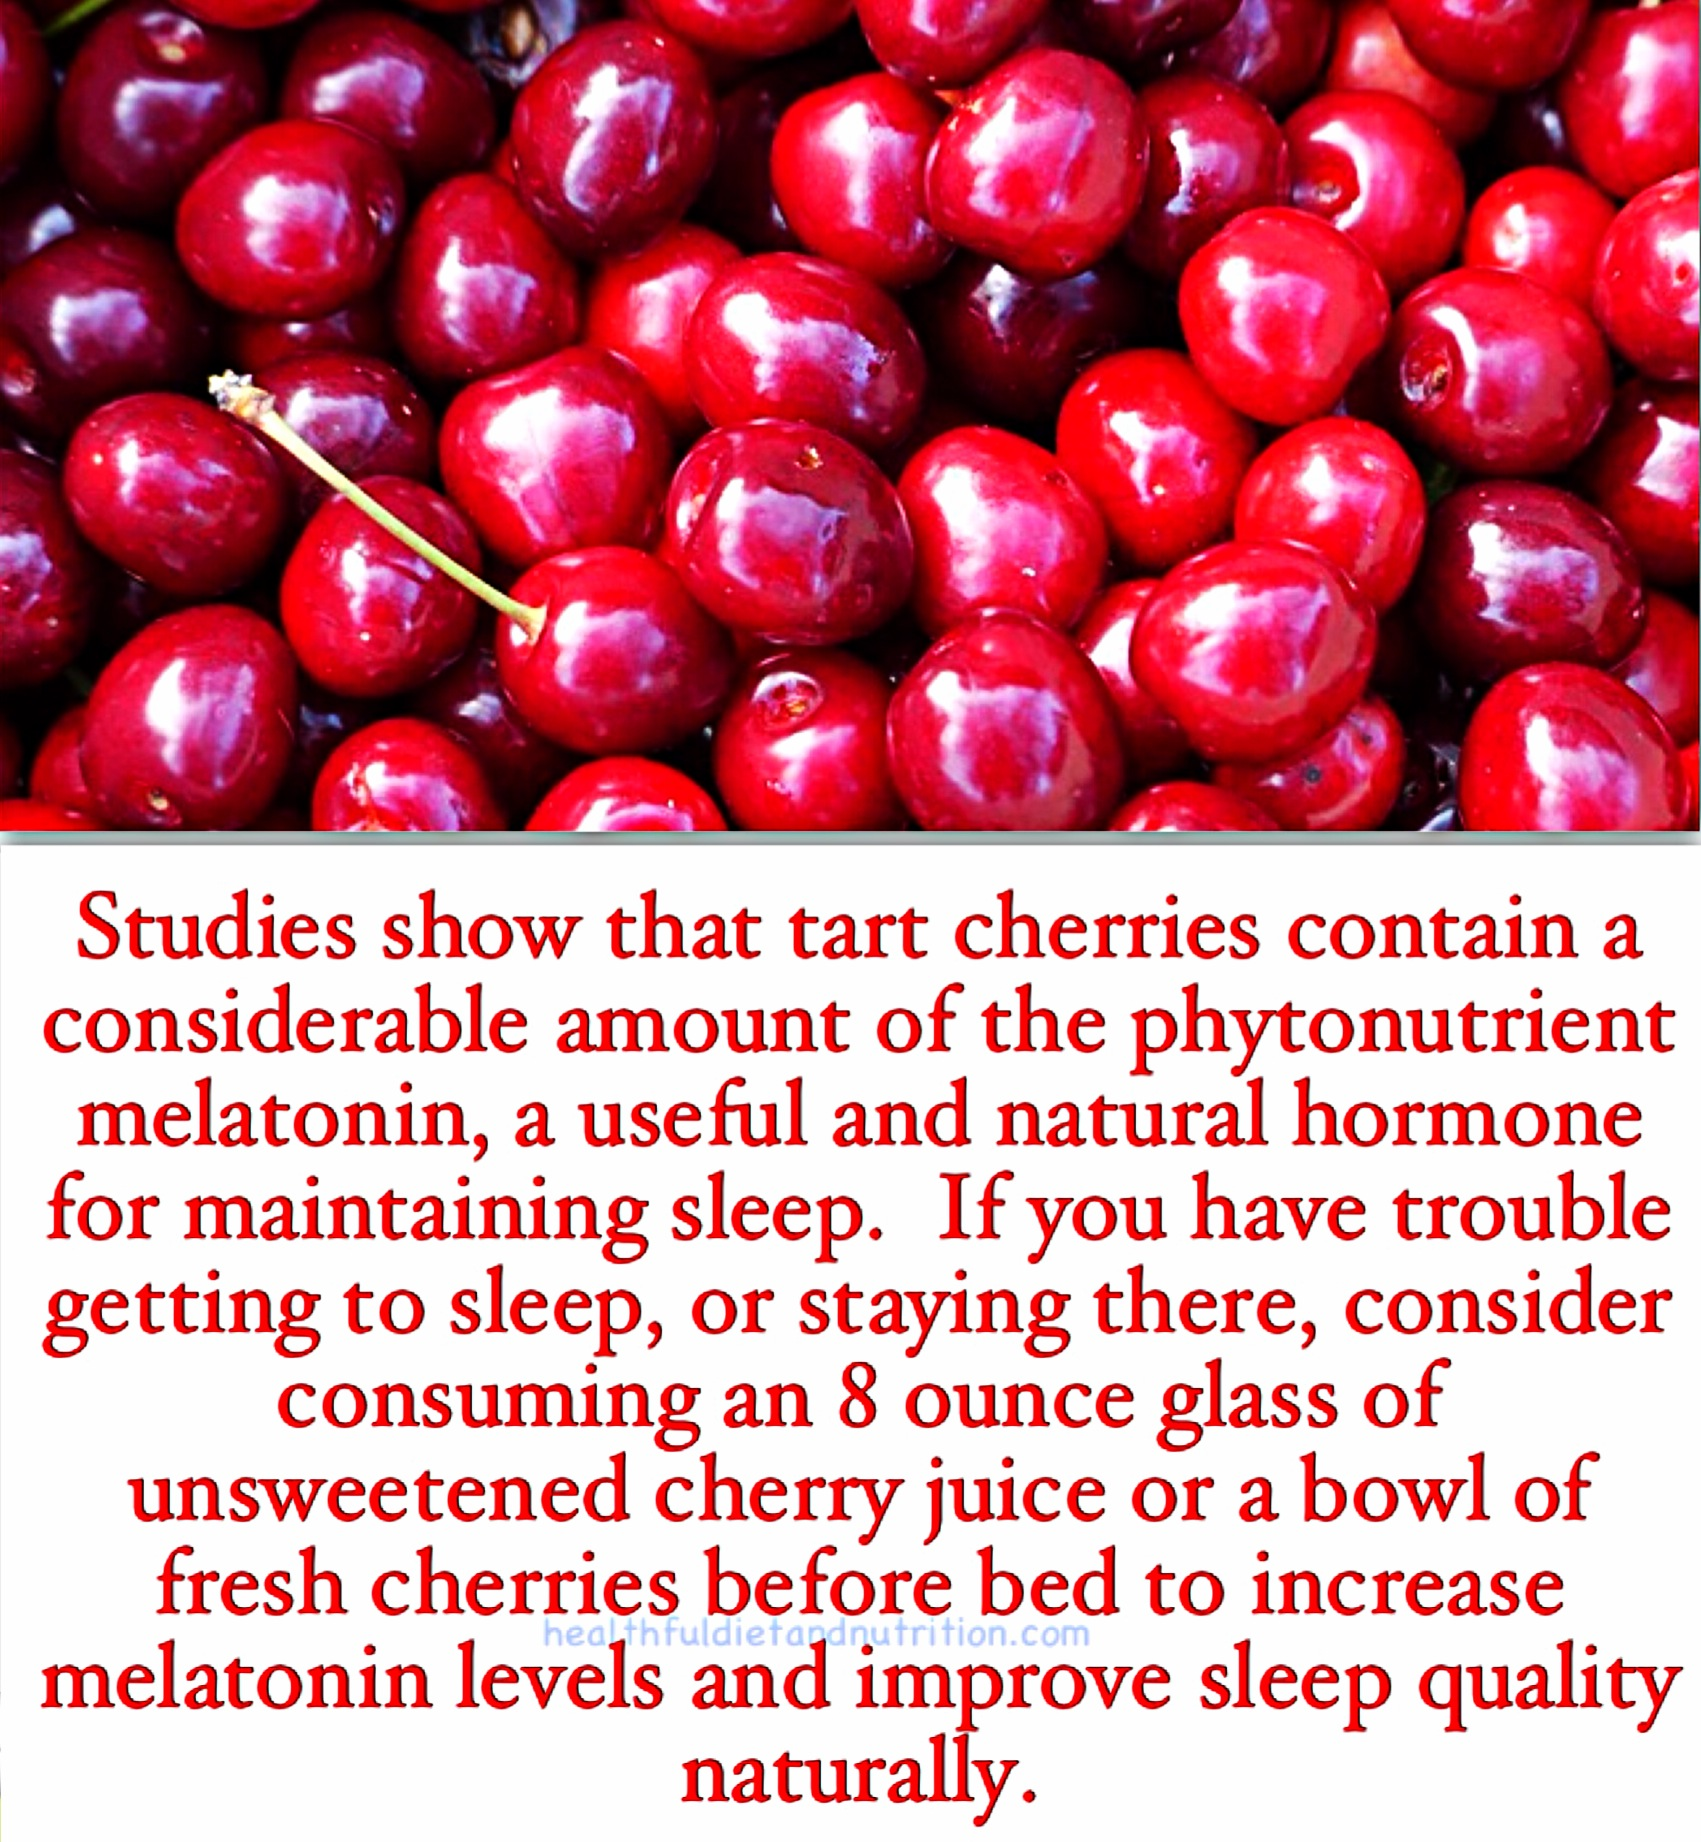 Consume Cherries To Improve Sleep Quality